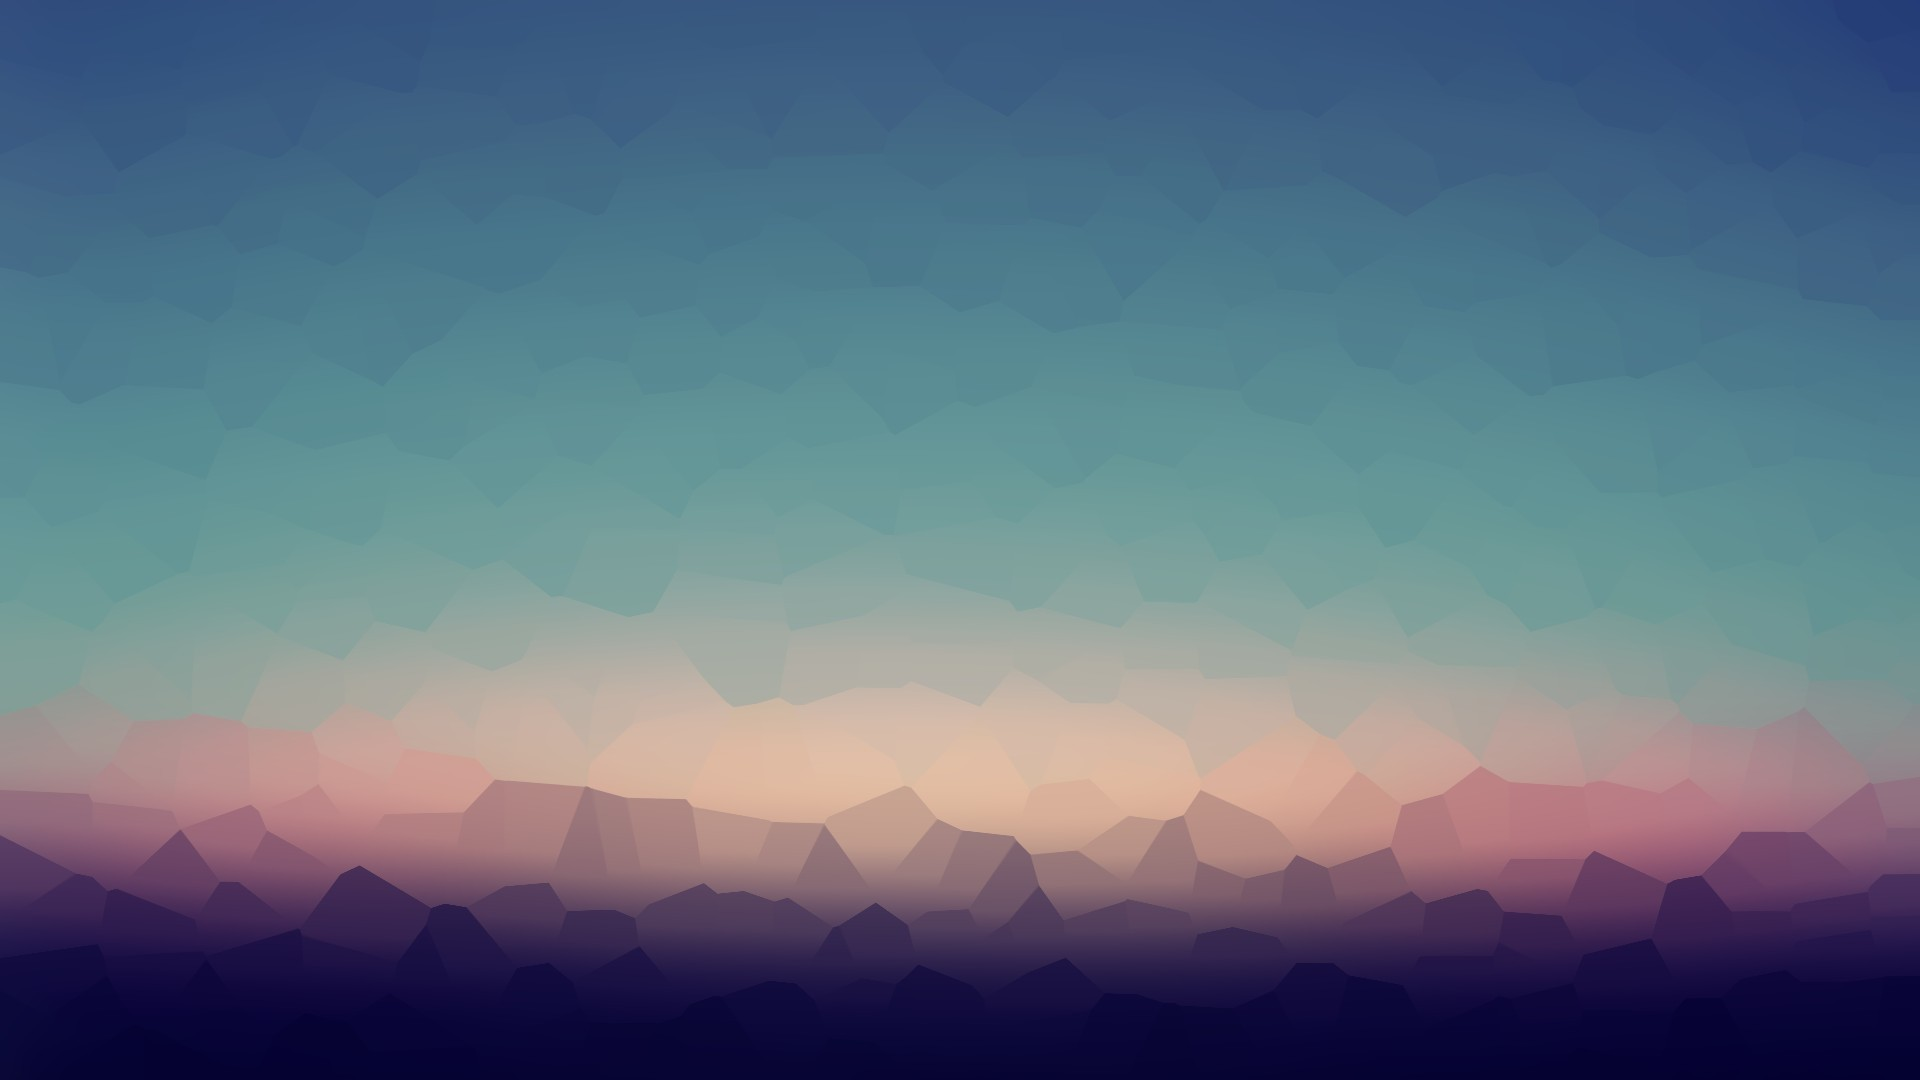 47 Simple Wallpaper Backgrounds For Your Desktop 1920x1080